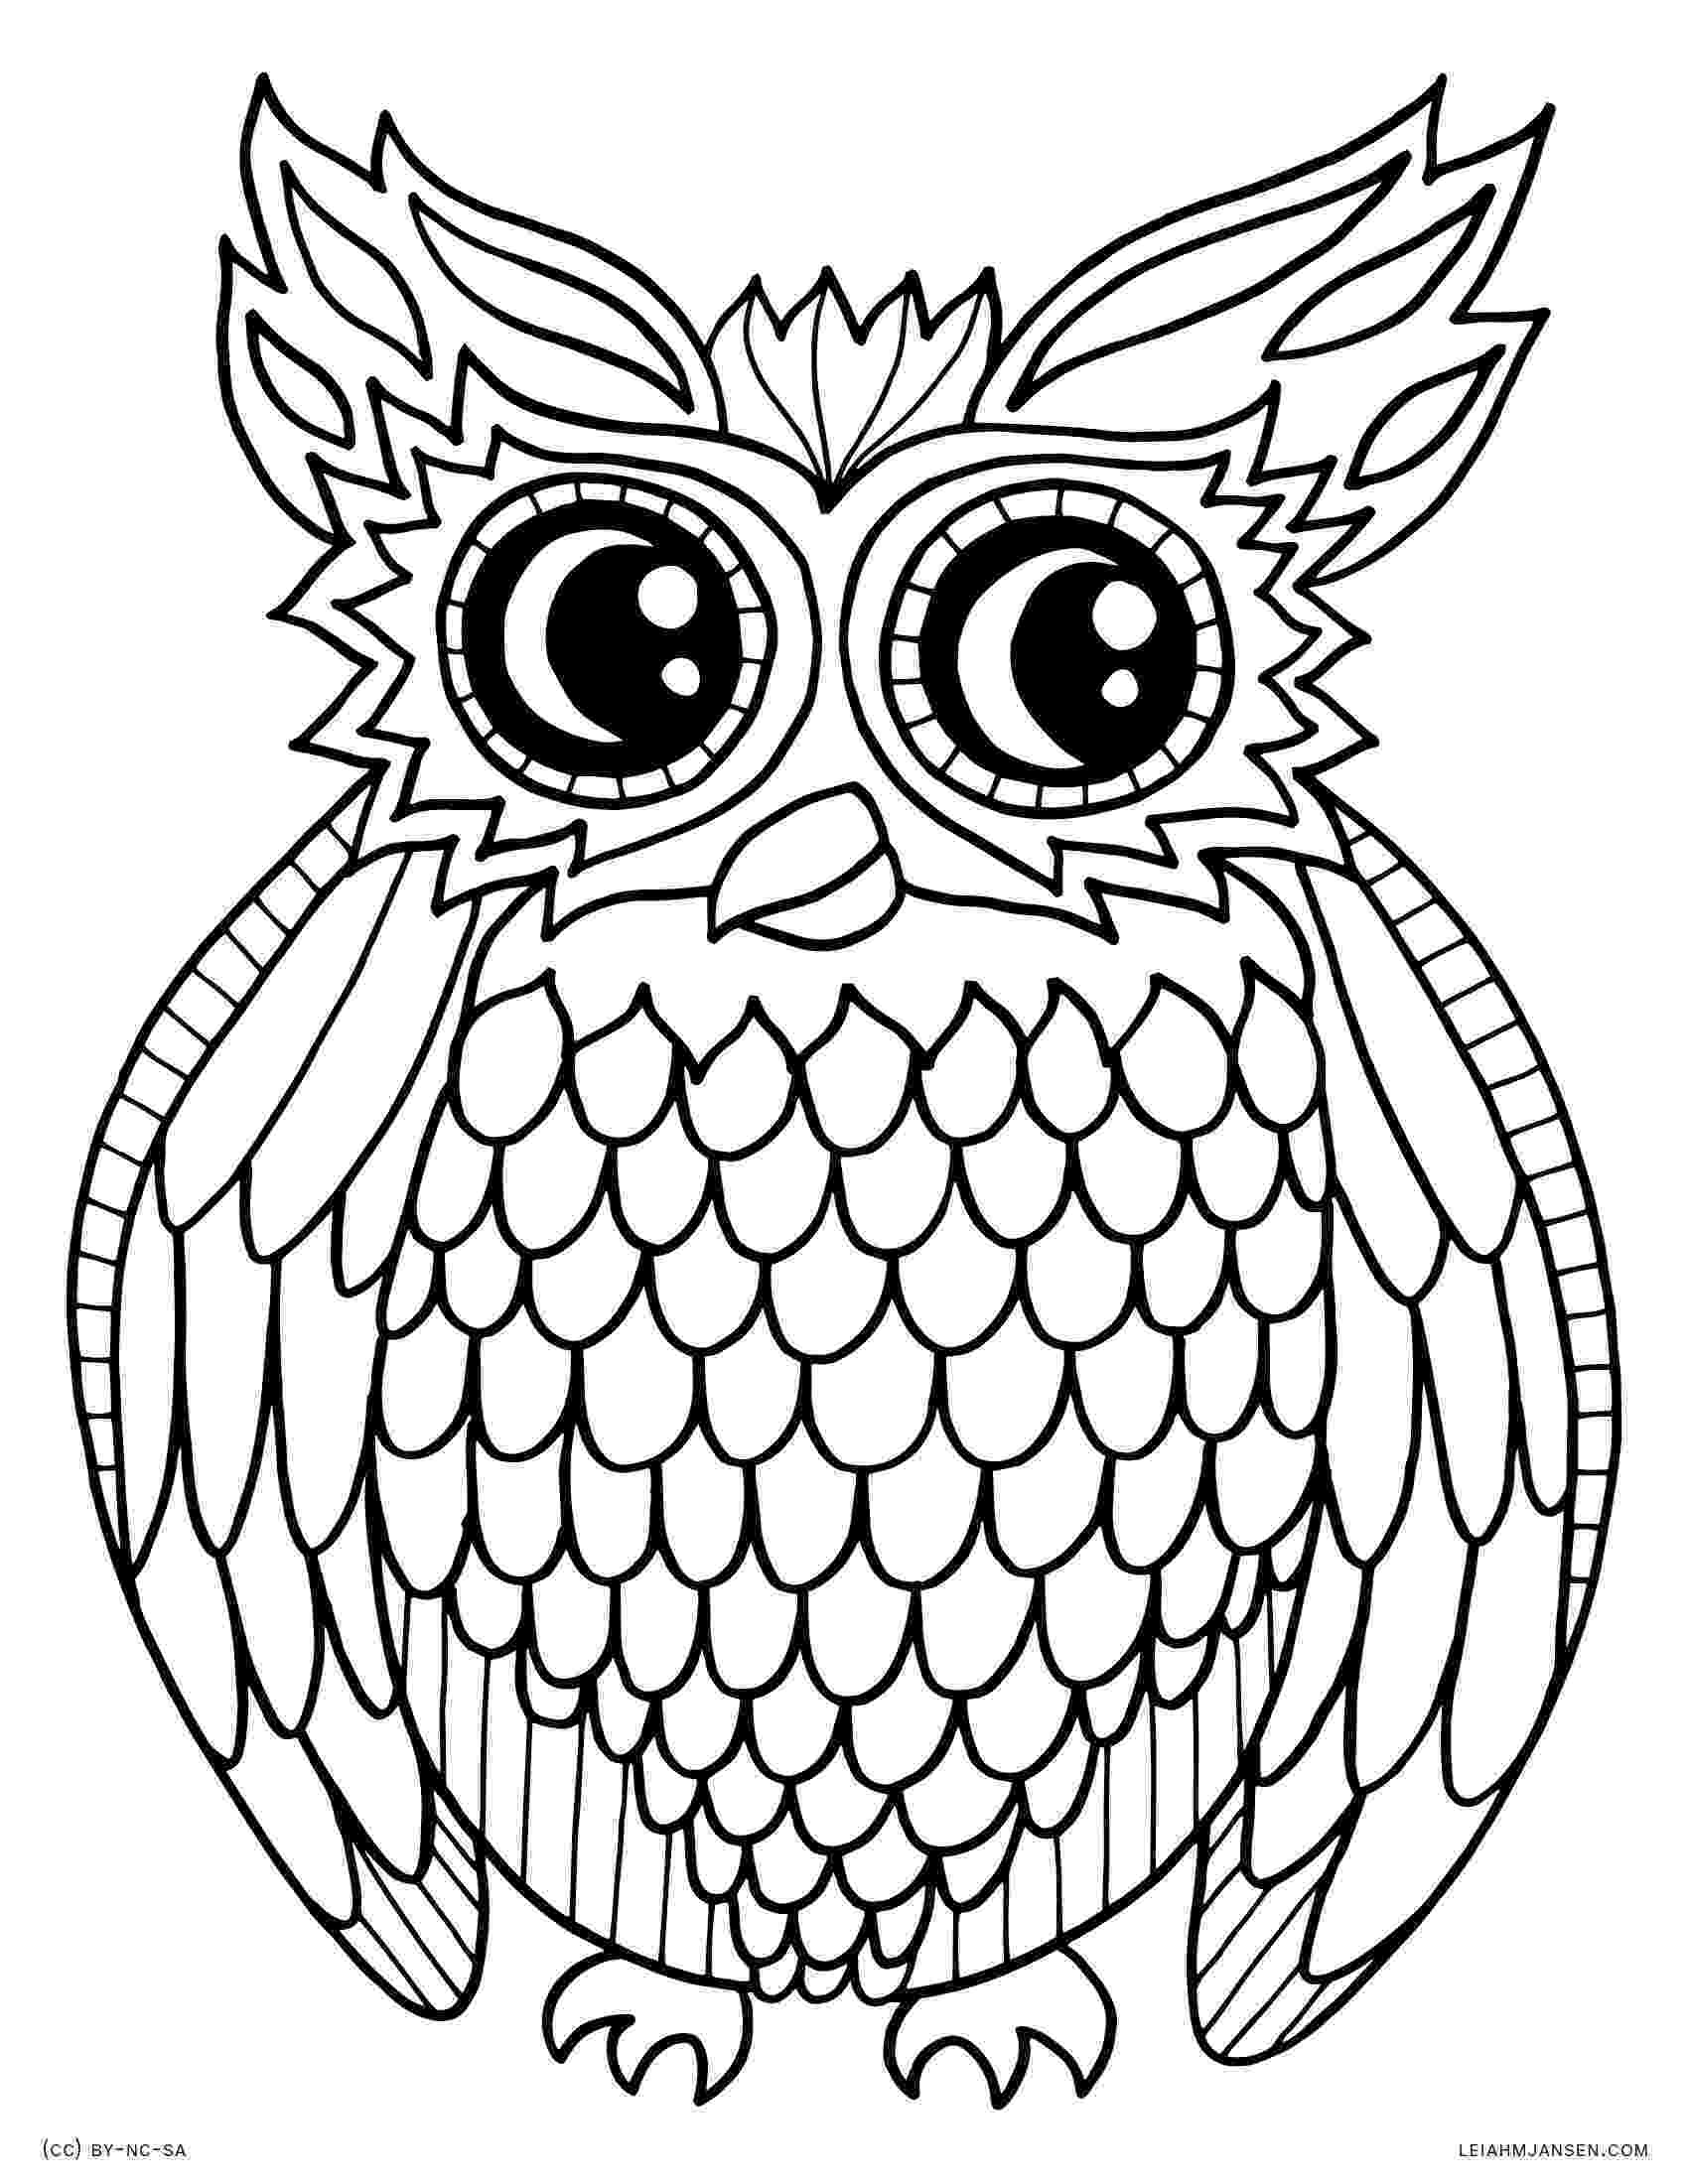 printable owl images cute owl coloring page free printable coloring pages owl images printable